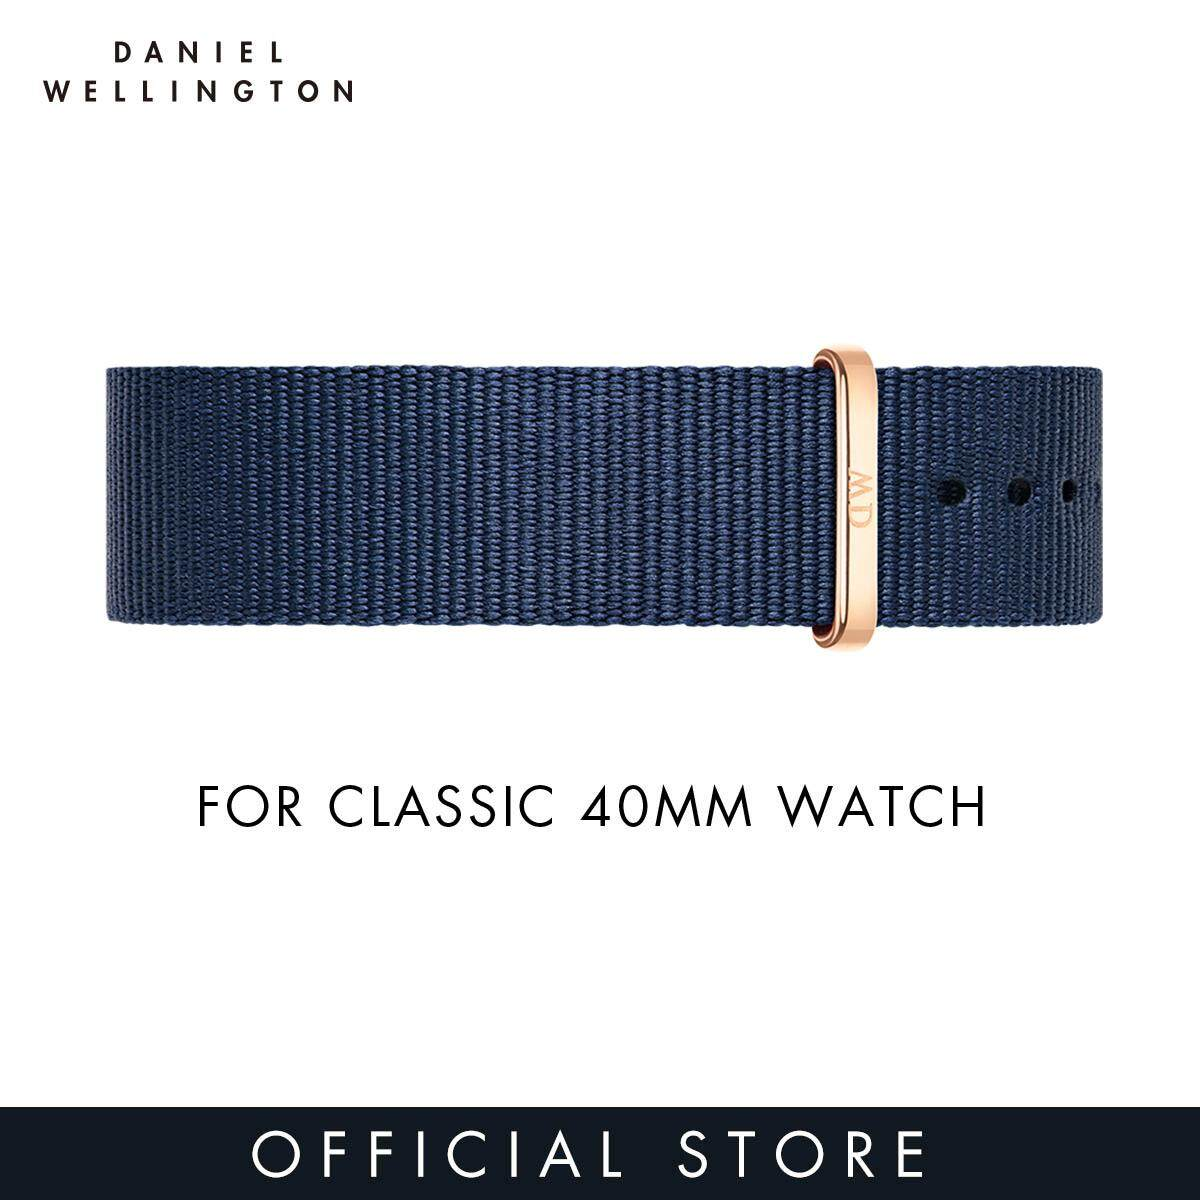 For 40mm Classic - Daniel Wellington Bayswater 20mm - Midnight Blue NATO Strap for 40mm DW Watches Malaysia